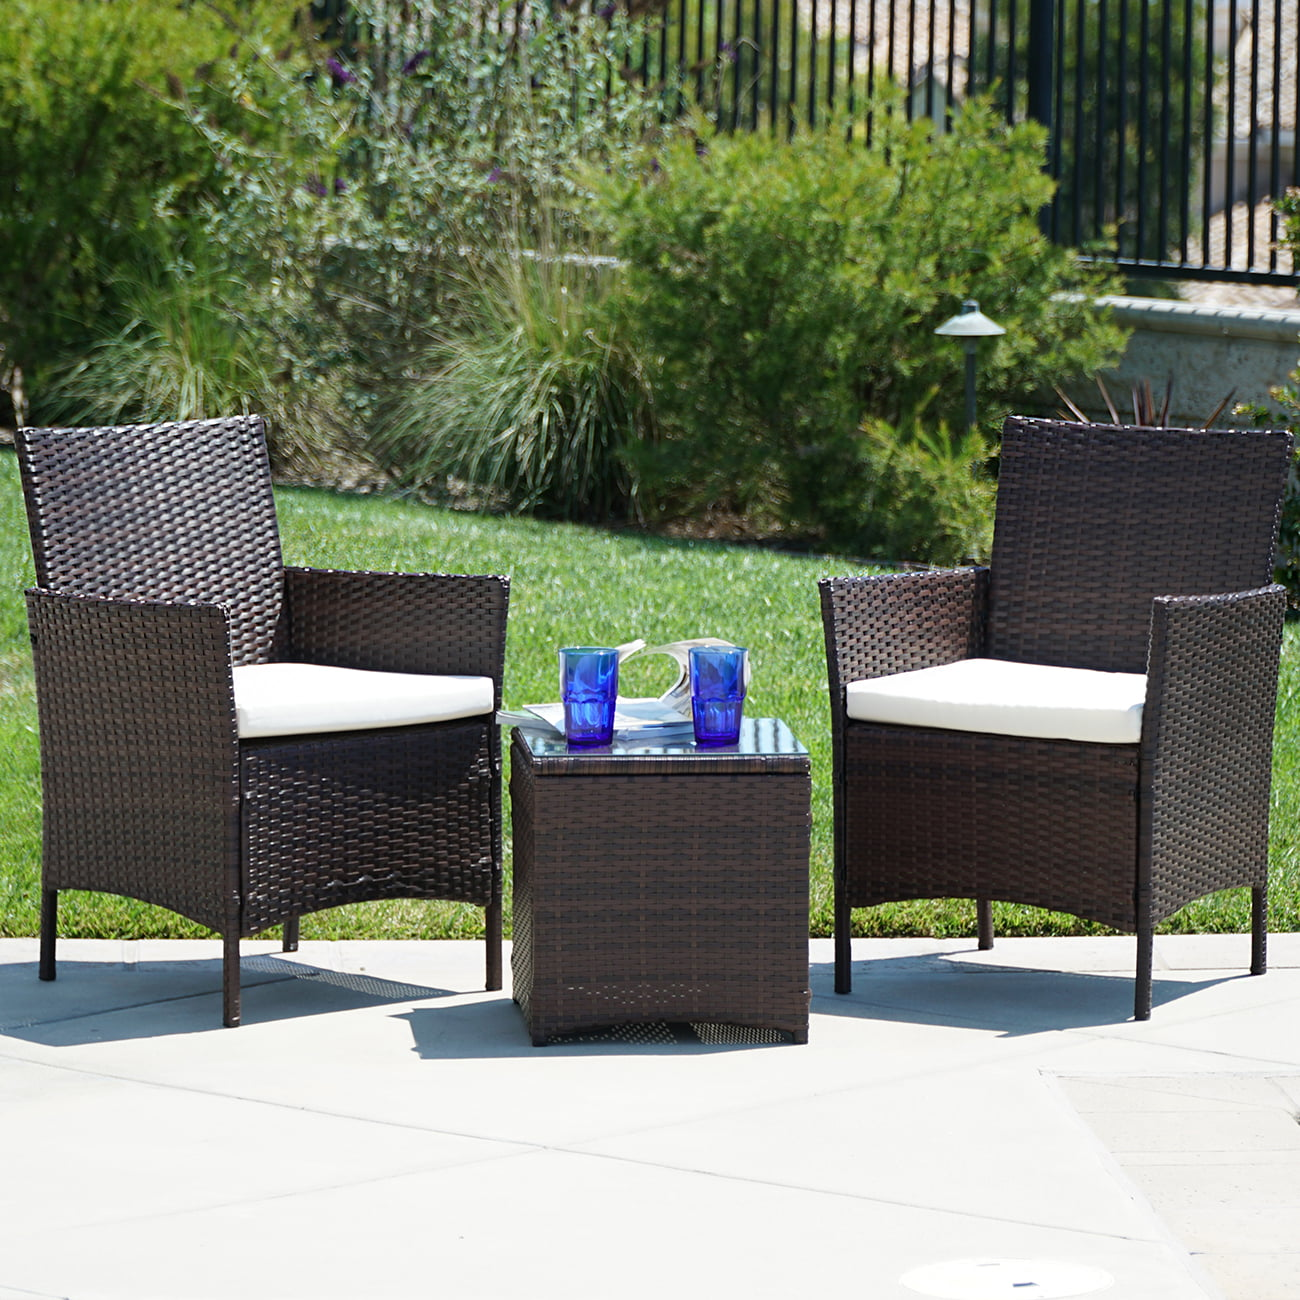 BELLEZE Wicker Furniture Outdoor Set 3 Piece Patio Outdoor Rattan Patio Set Two Chairs One Glass Table Brown by Belleze